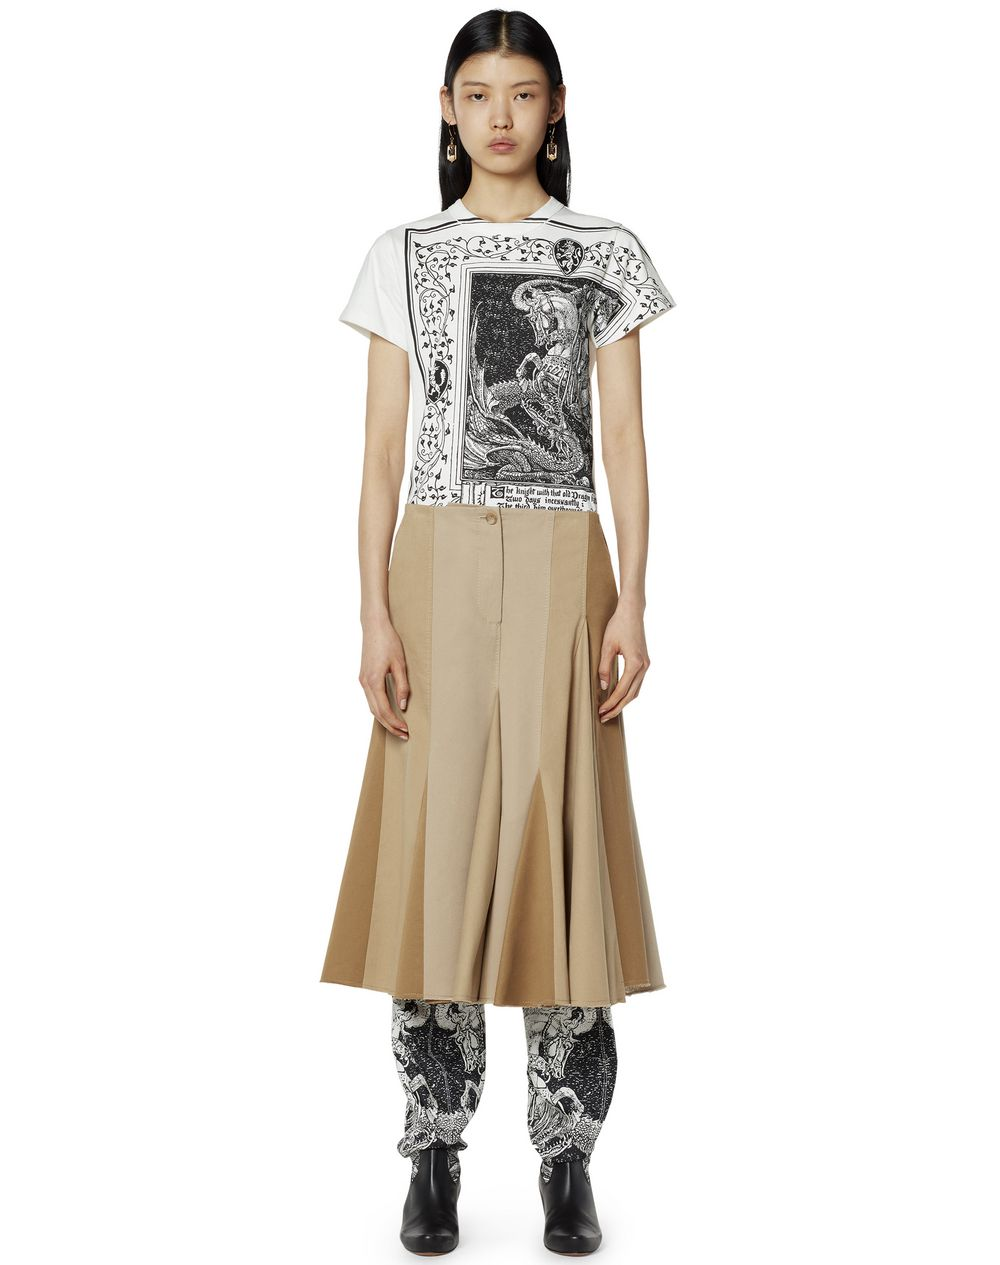 PLEATED COTTON SKIRT - Lanvin